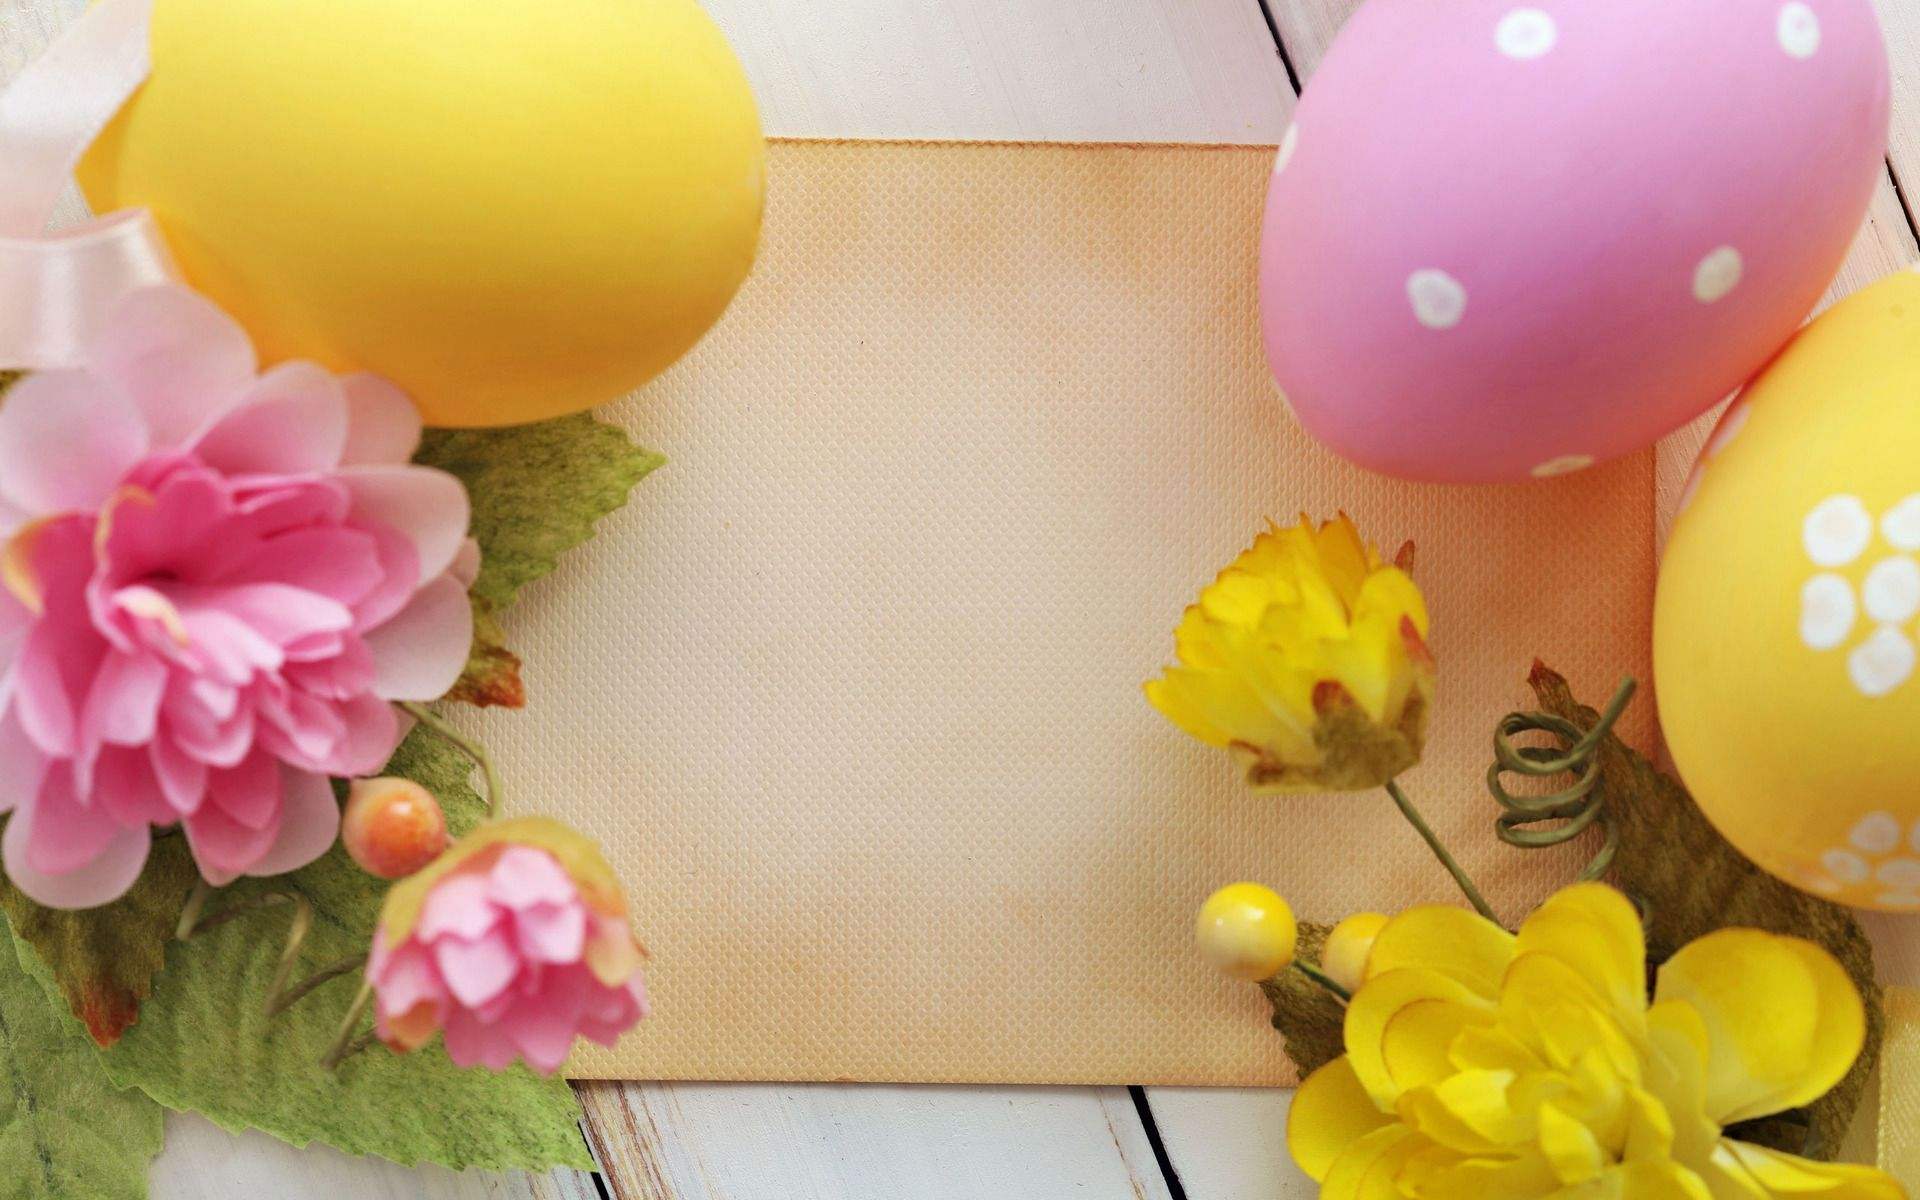 1920x1200 Pin on Easter Eggs Wallpapers & Backgrounds